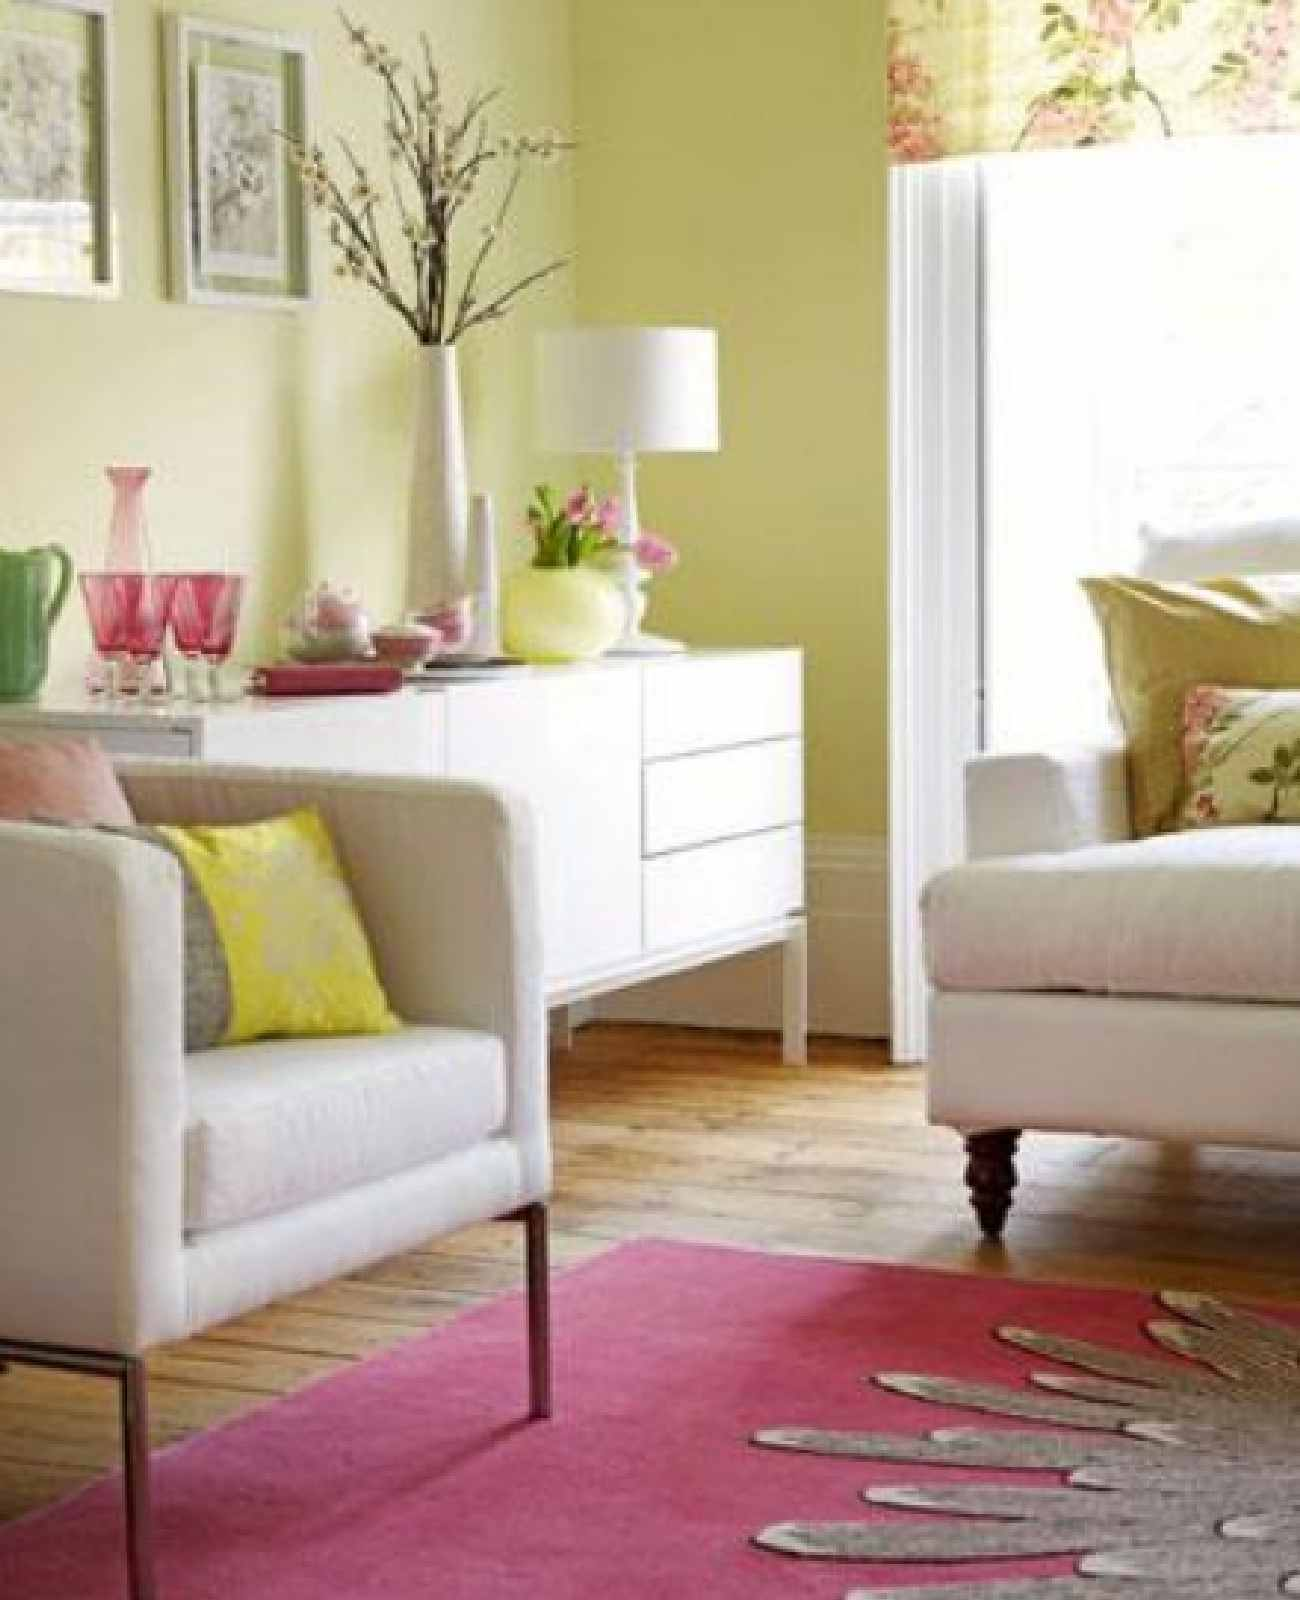 Home makeover - Quick and easy ways to give your home a seasonal makeover